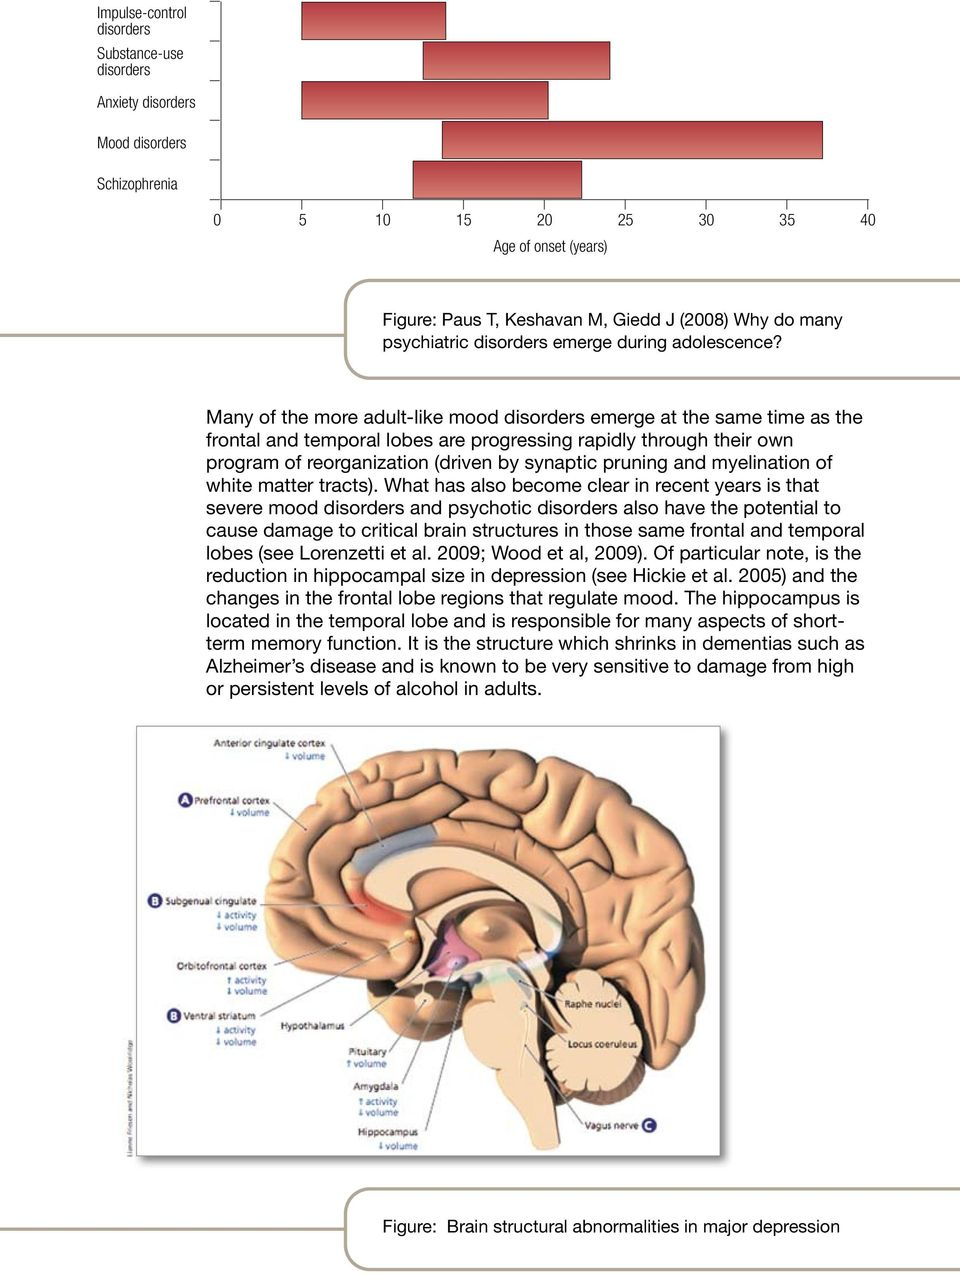 Many of the more adult-like mood disorders emerge at the same time as the frontal and temporal lobes are progressing rapidly through their own program of reorganization (driven by synaptic pruning